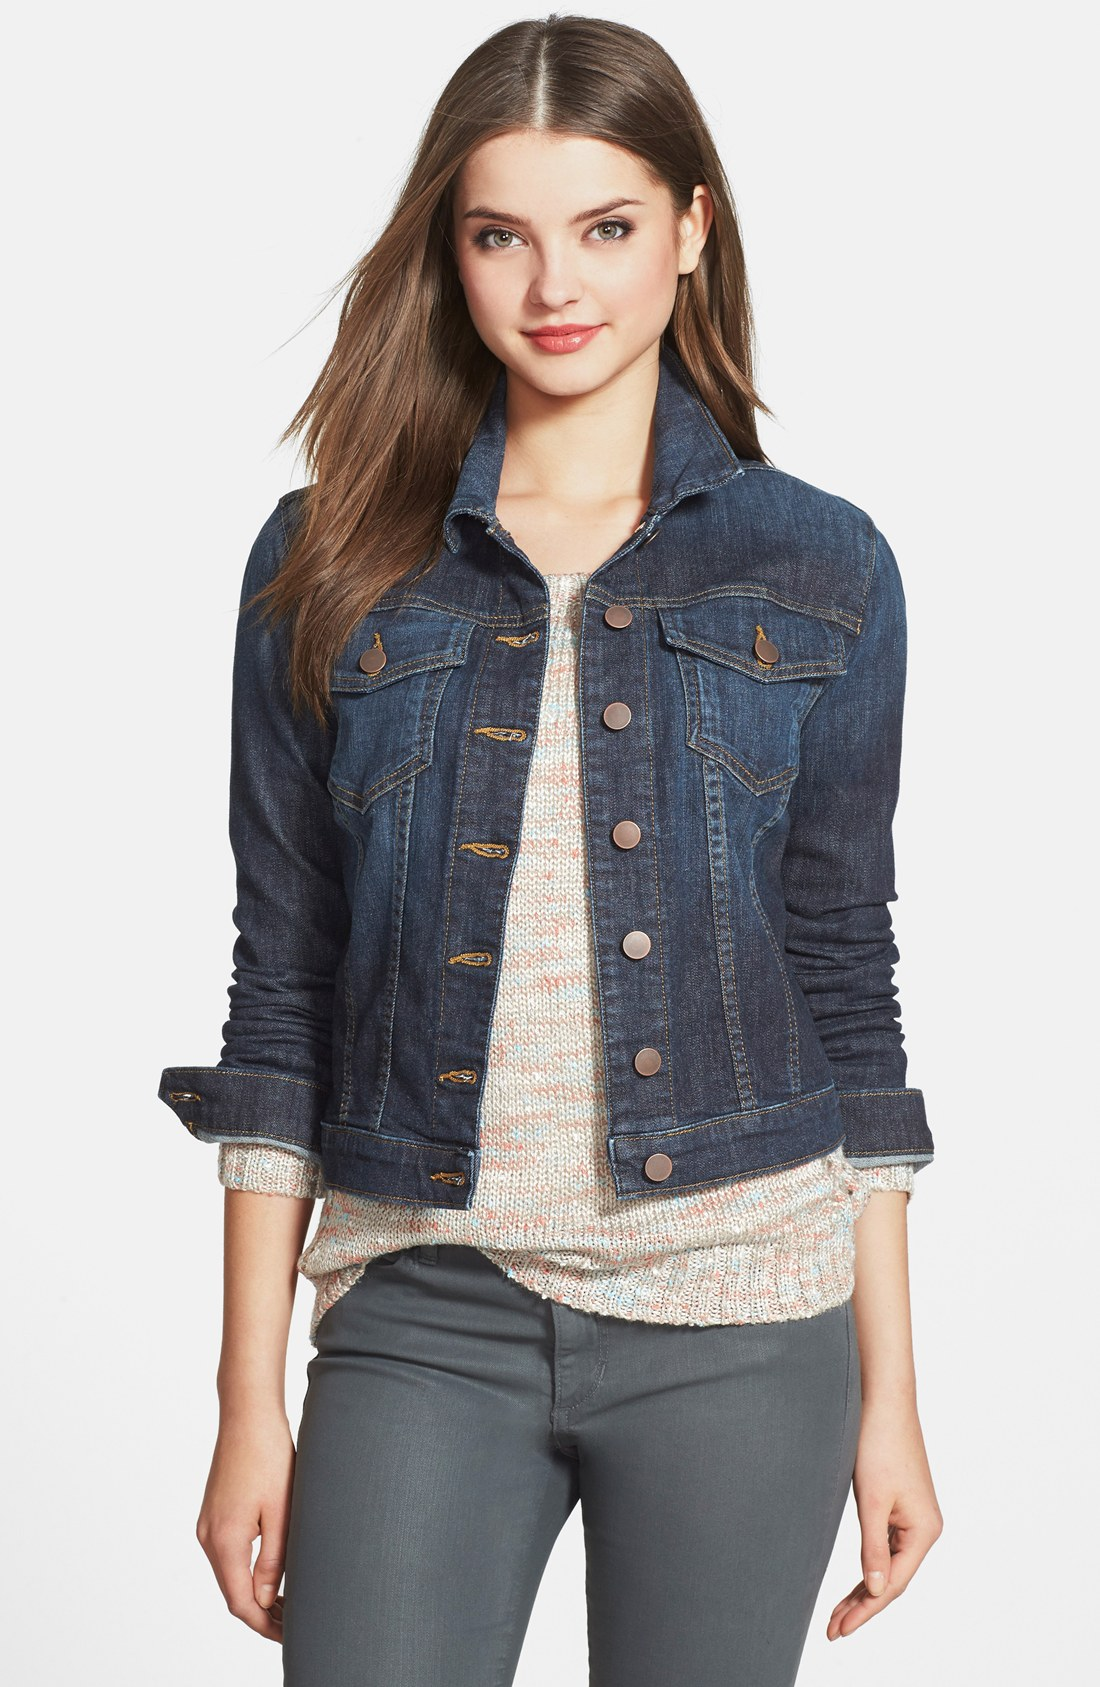 Shop for jean & denim jackets for women at fbcpmhoe.cf Browse women's jean & denim jackets & vests from top brands like Topshop, Levi's, Hudson & more. Free shipping & returns.